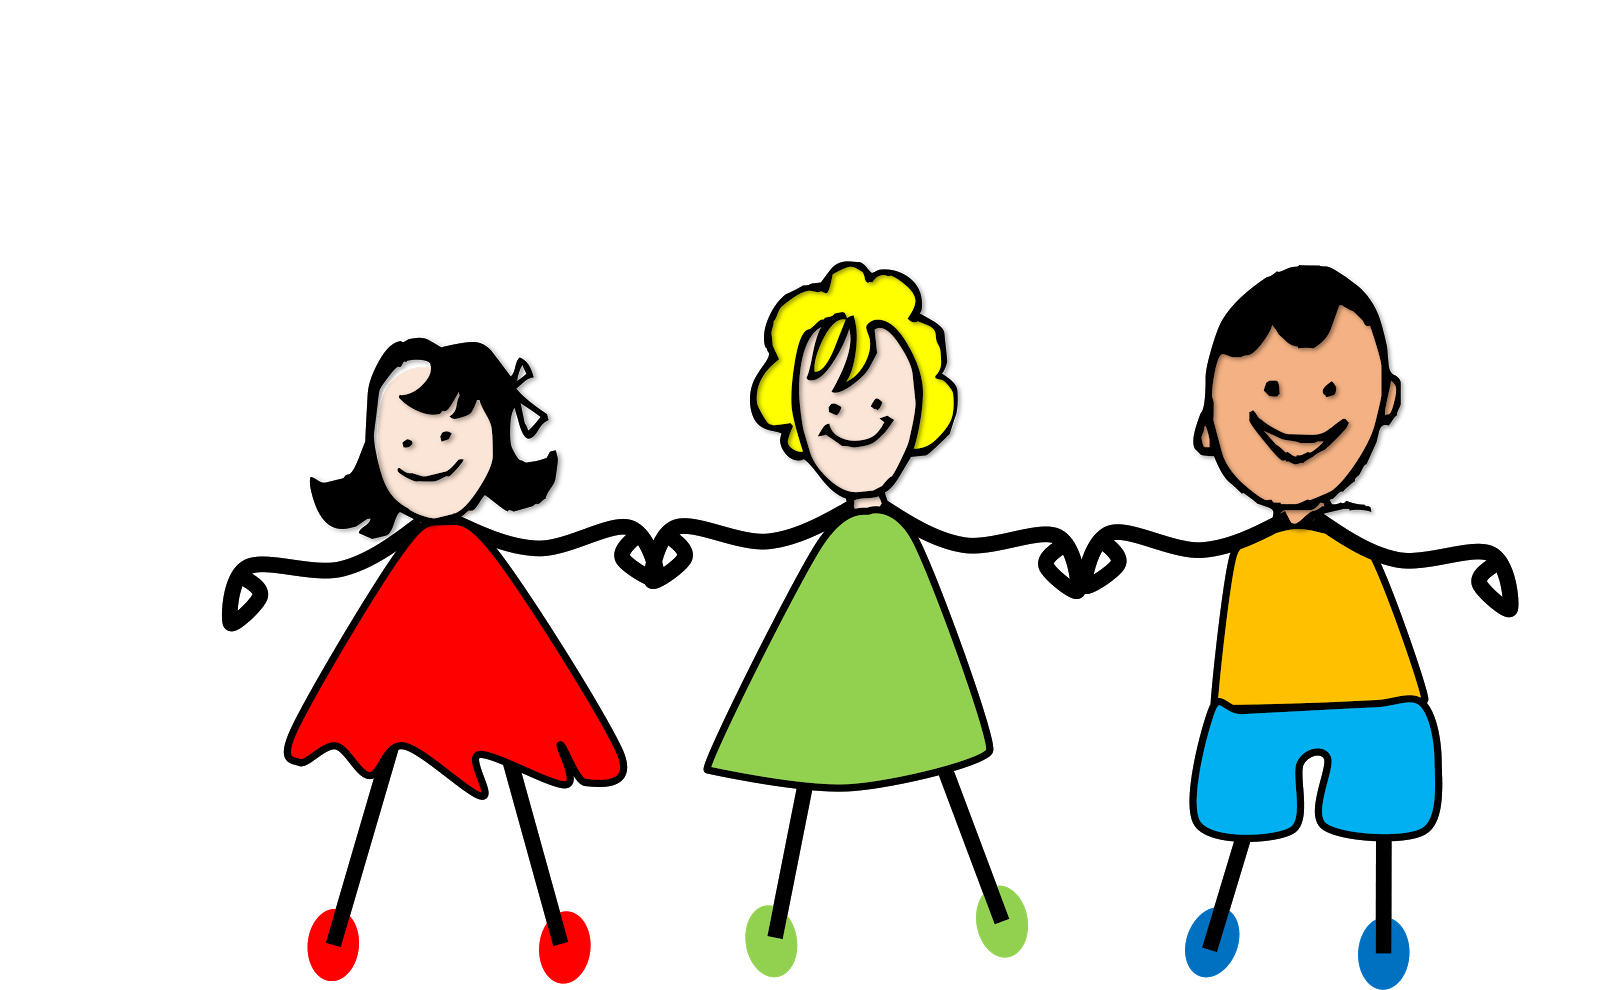 Kids holding hand clipart - .